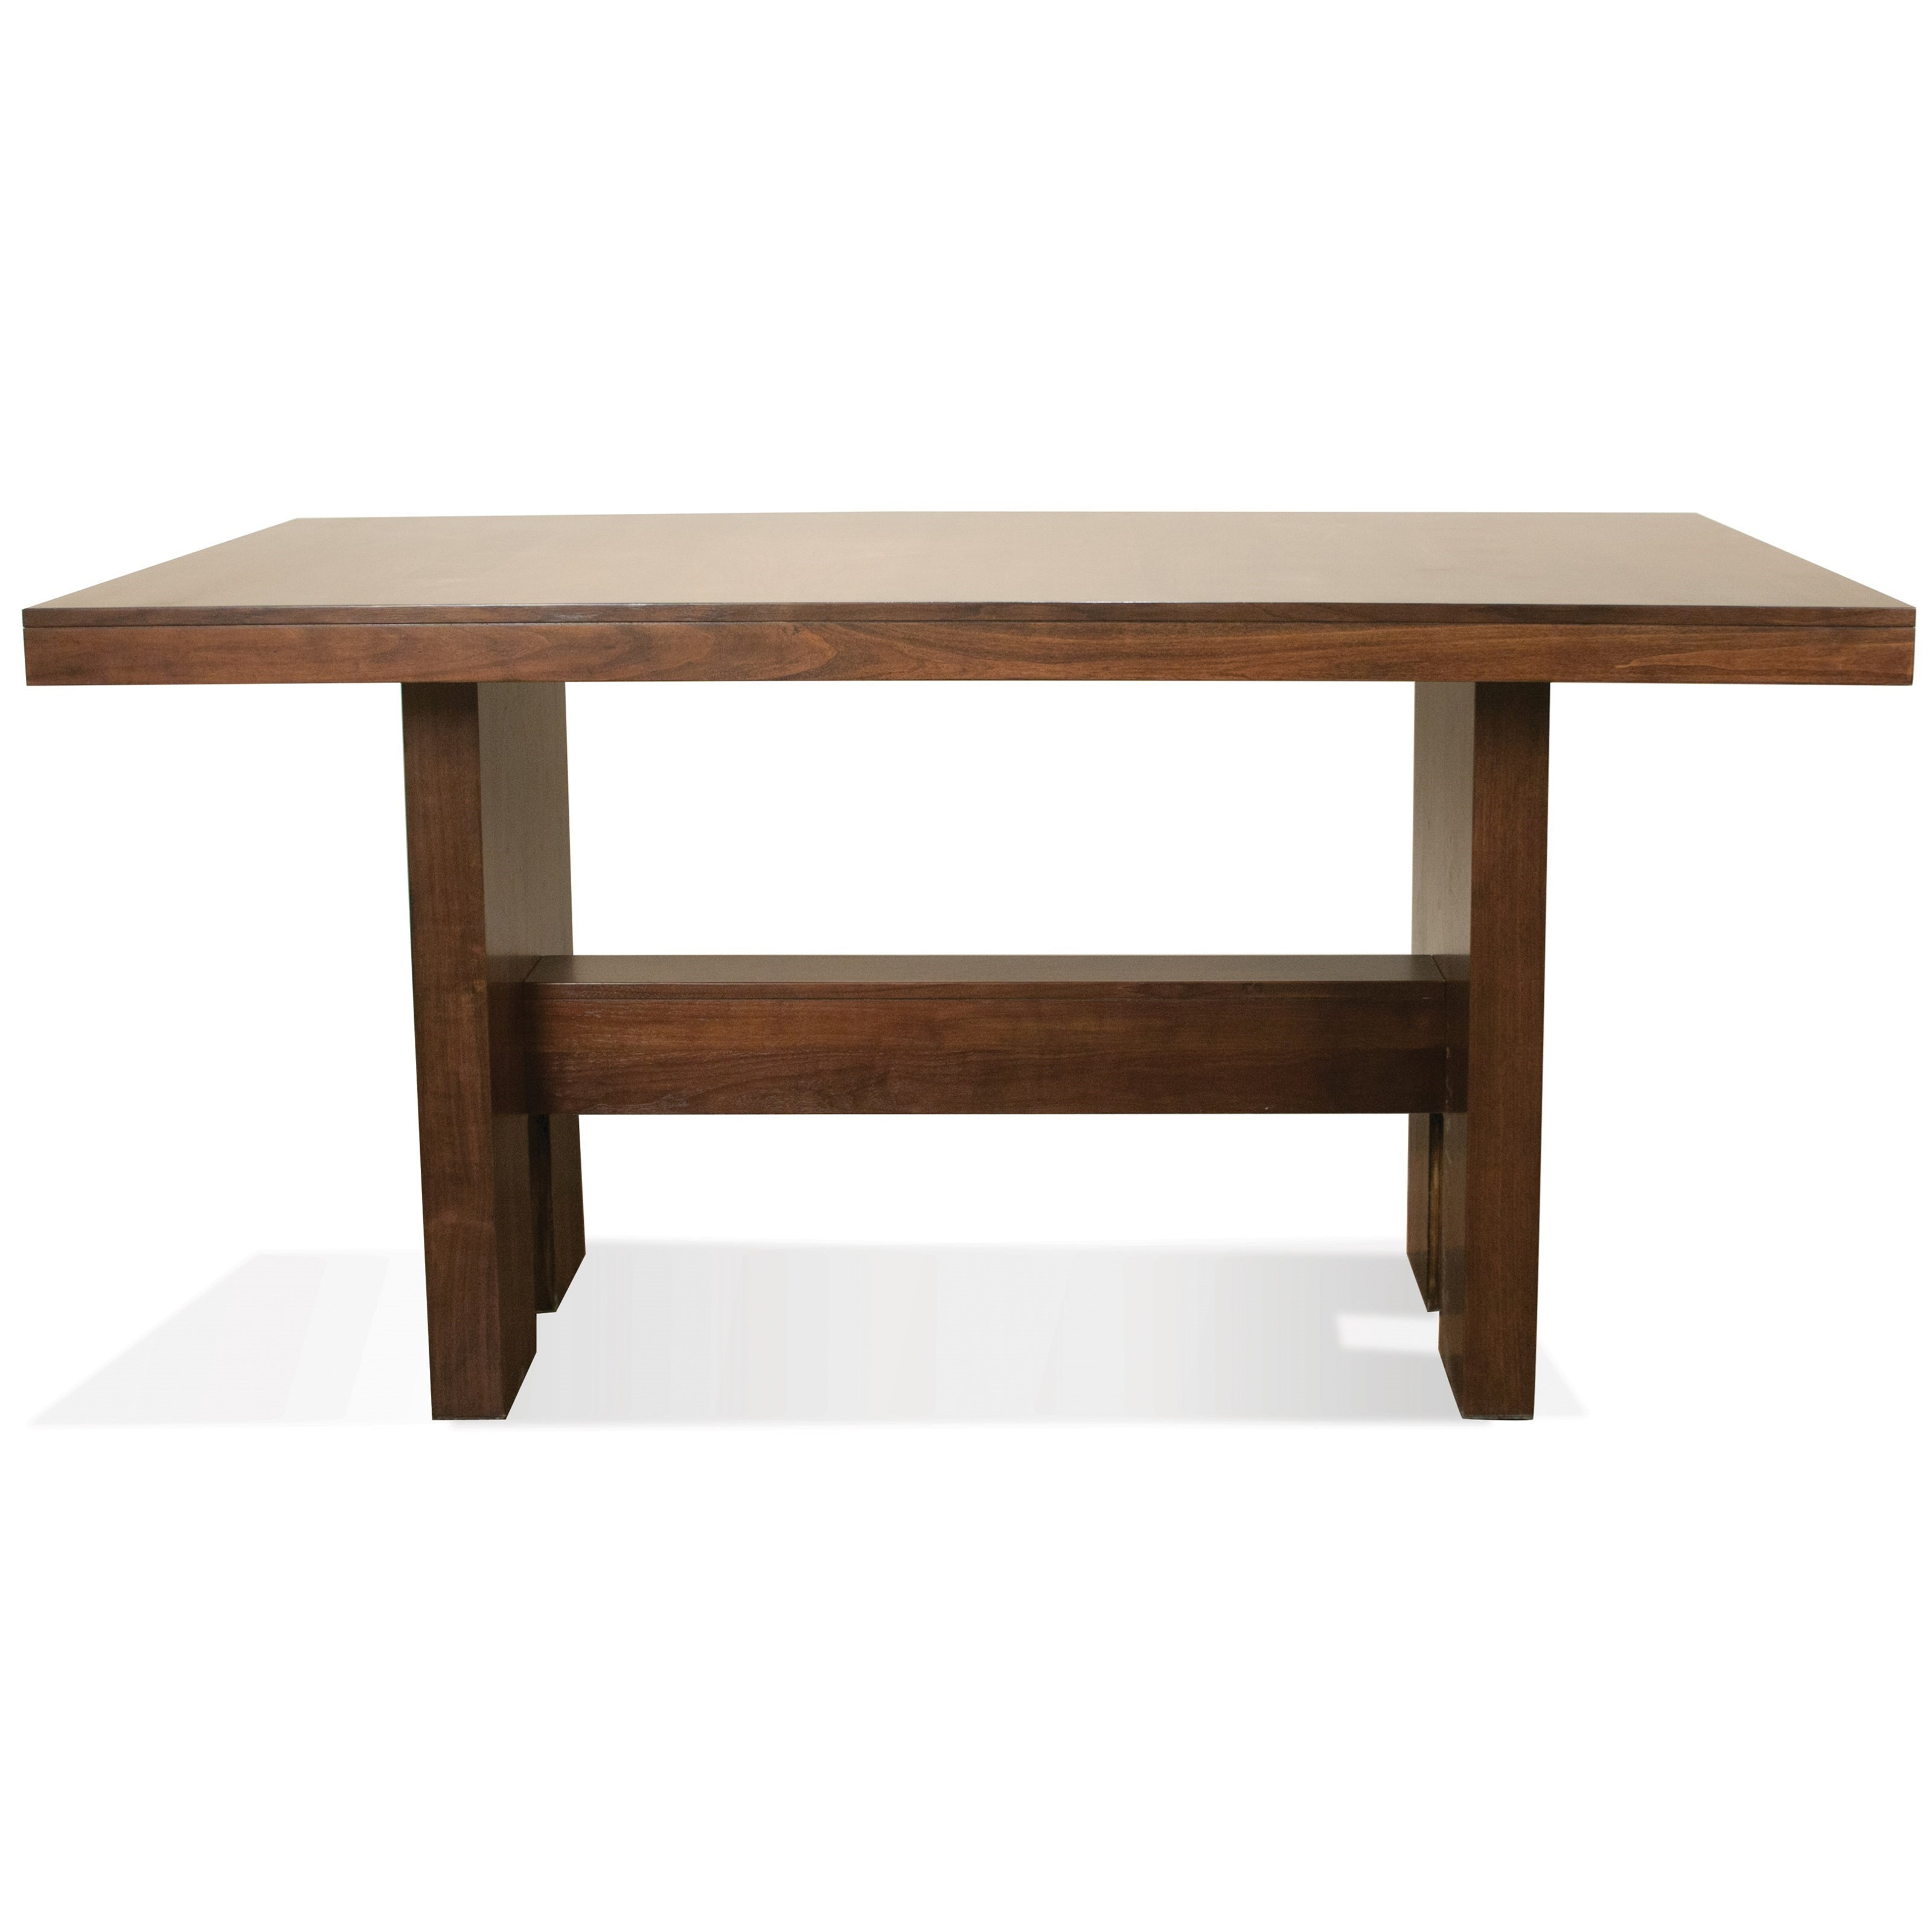 Classic Table Shapes Terra Vista Gathering Height Dining Table In Casual Walnut Finish By Riverside Furniture At Prime Brothers Furniture